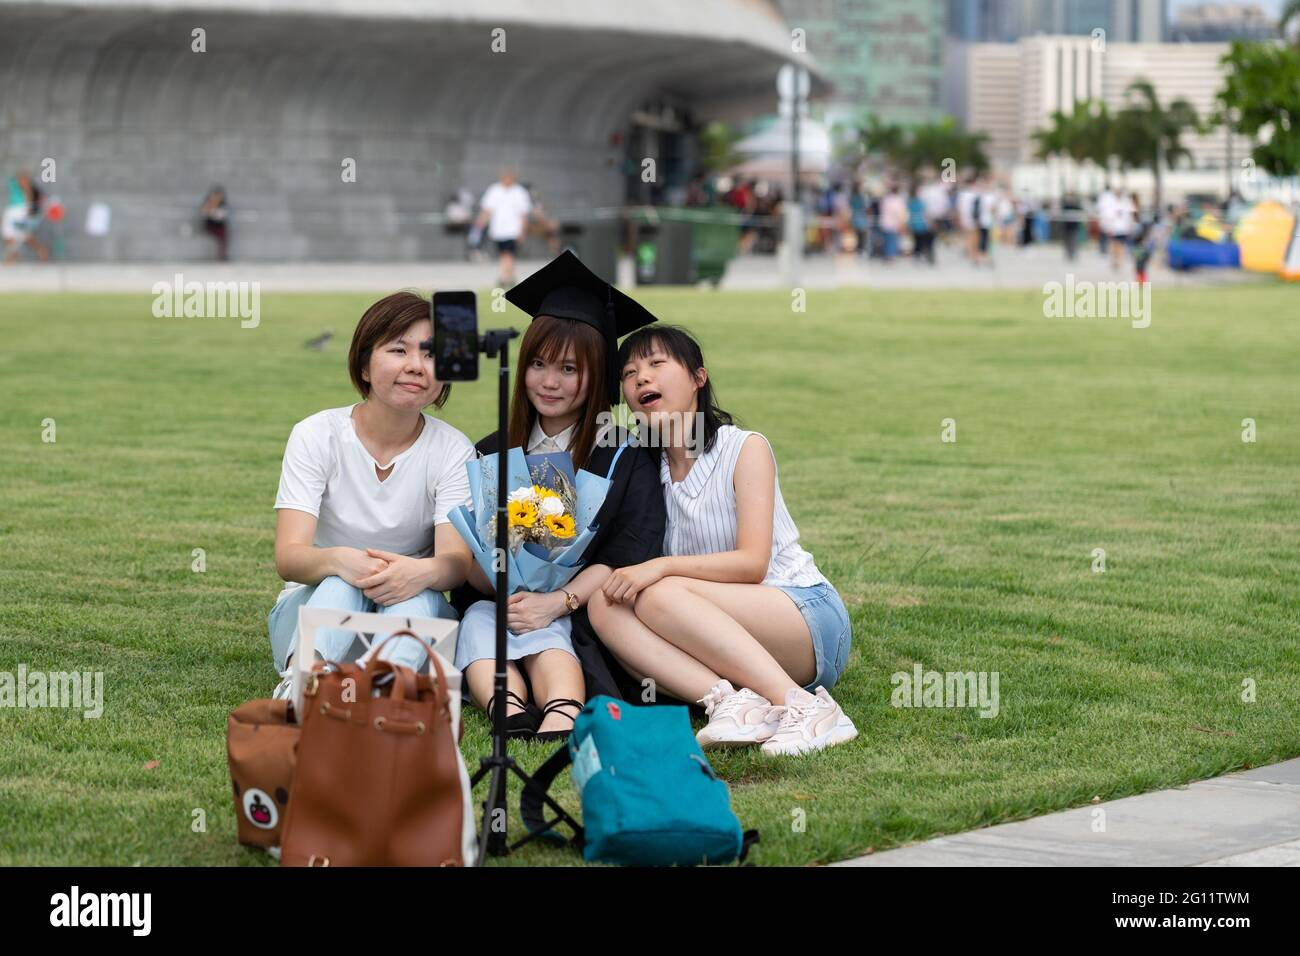 19 5 2021 happy freshly graduated undergraduate and friends in Academic dress gown sit on grass field near West Kowloon Waterfront Promenade, Hong Kon Stock Photo